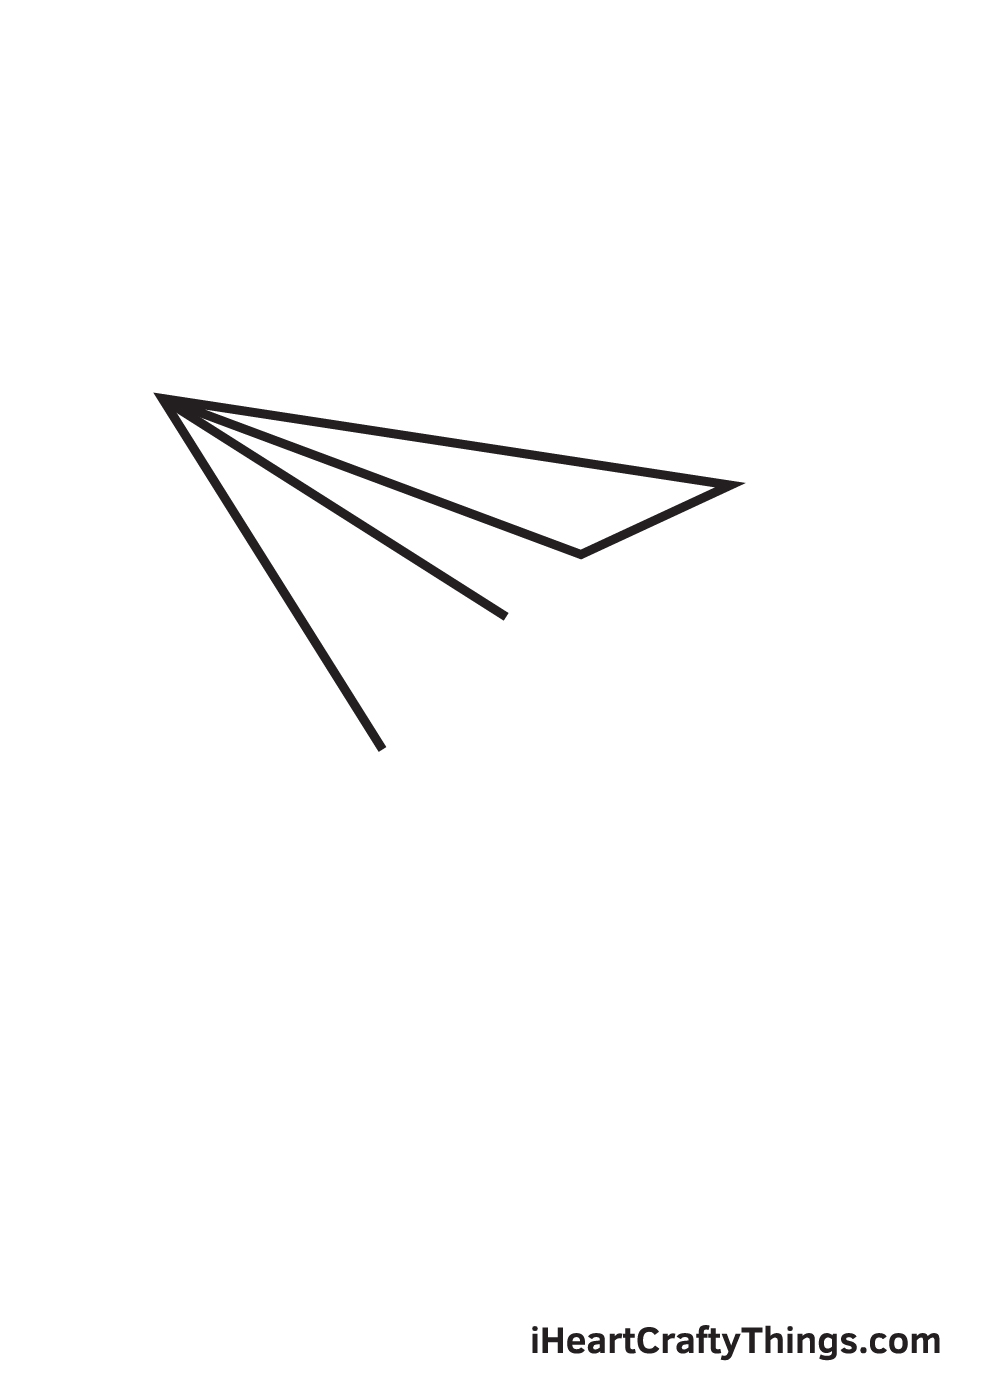 paper airplane drawing step 5